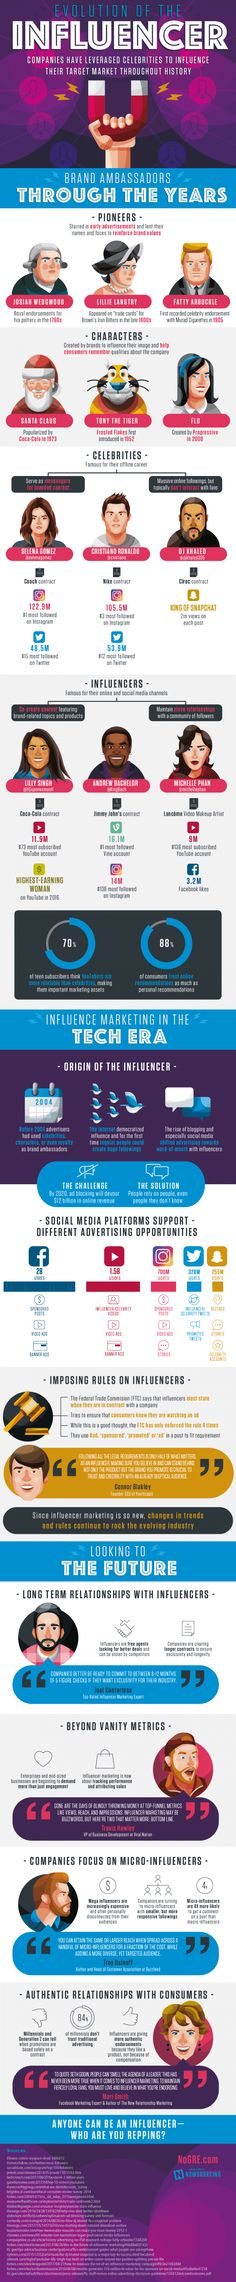 The Evolution of Influencers From the to Today (Infographic) - Influencer Marketing - Ideas of Sell Your House Fast - While influencer marketing may have started long ago it's reaching new heights today with the help of social media. Marketing Digital, Marketing Mail, Marketing En Internet, Marketing Tools, Inbound Marketing, Business Marketing, Content Marketing, Online Marketing, Social Media Marketing